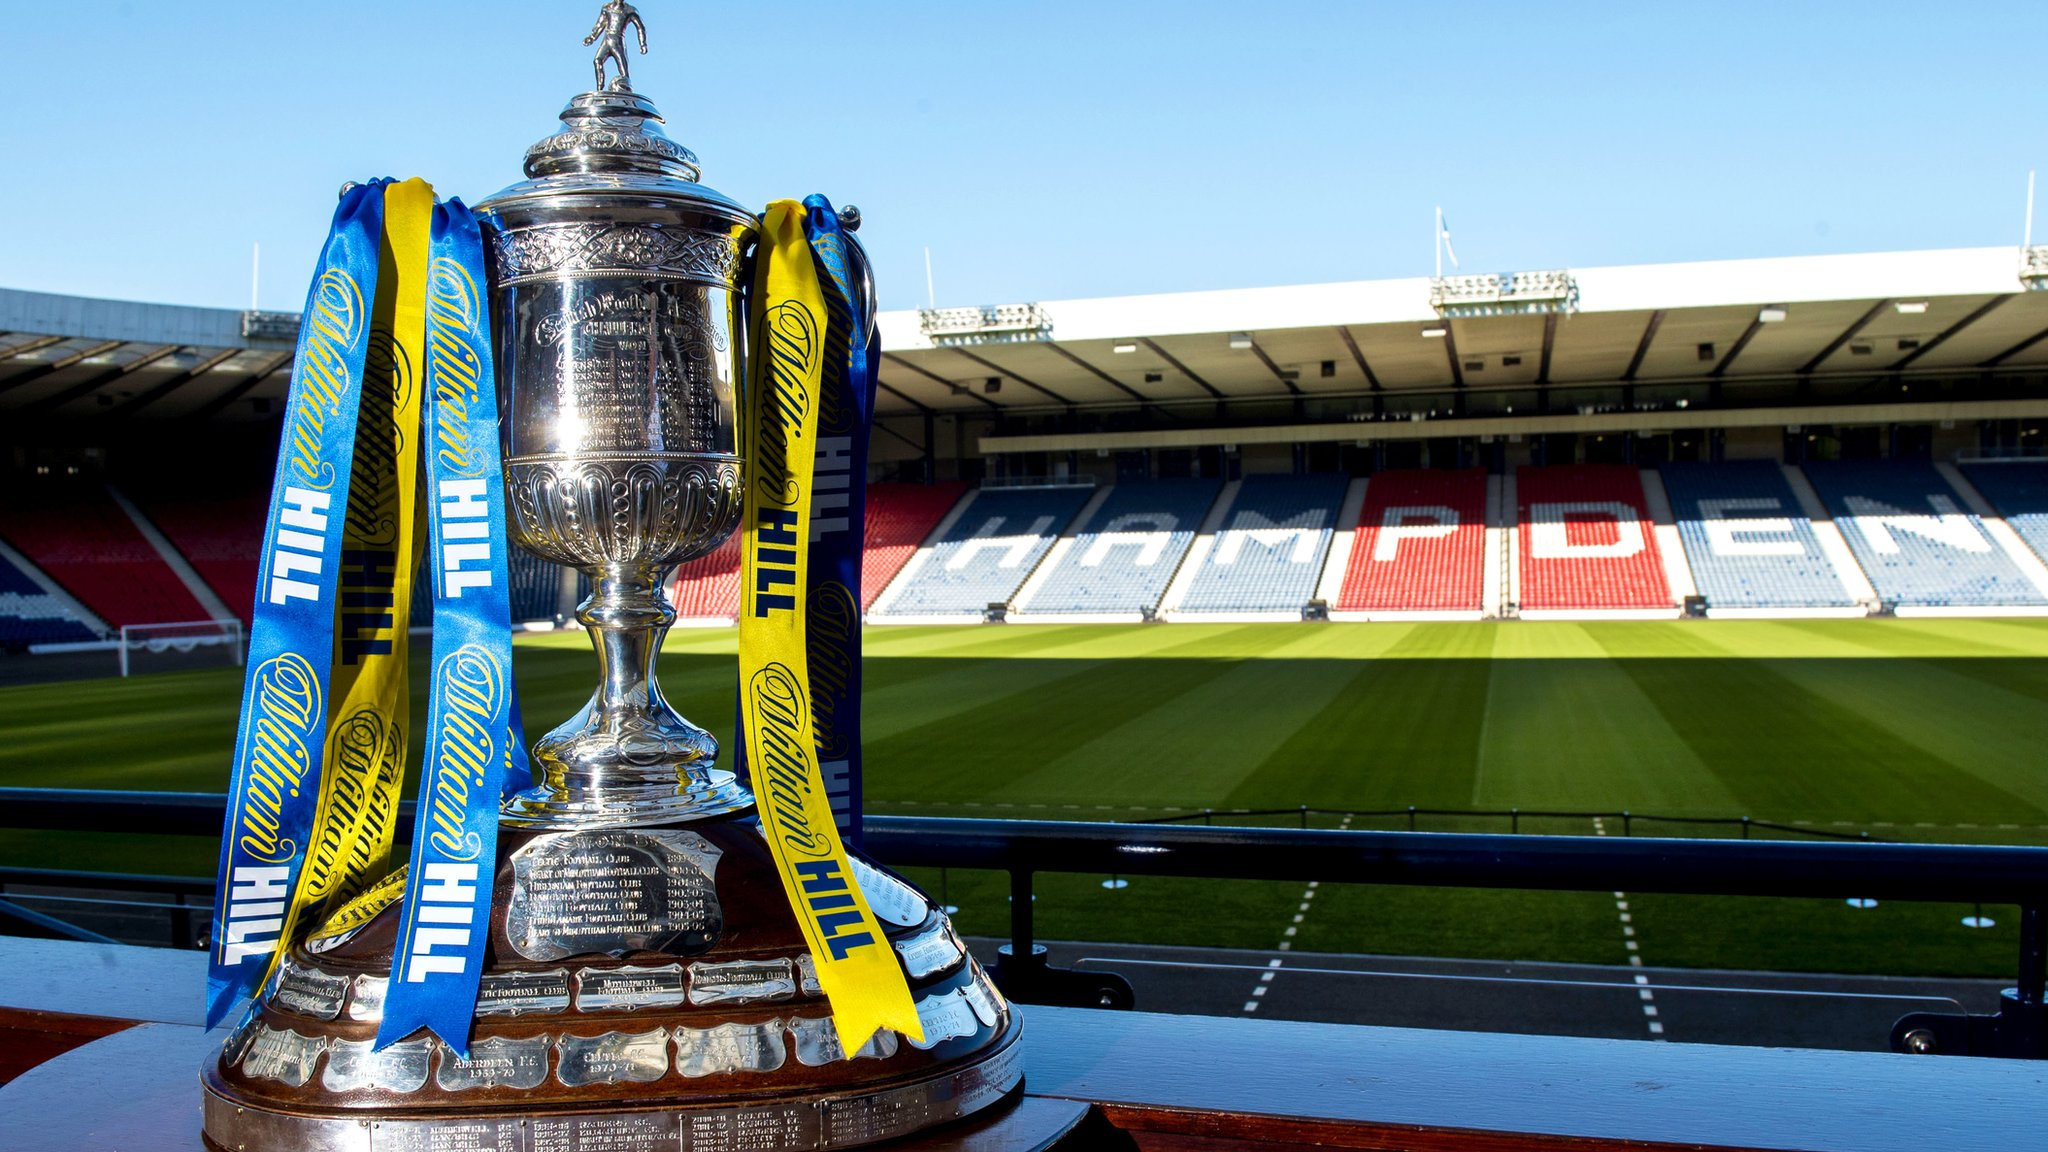 Scottish Cup: BBC to show Auchinleck Talbot v Ayr United & Hearts v Livingston